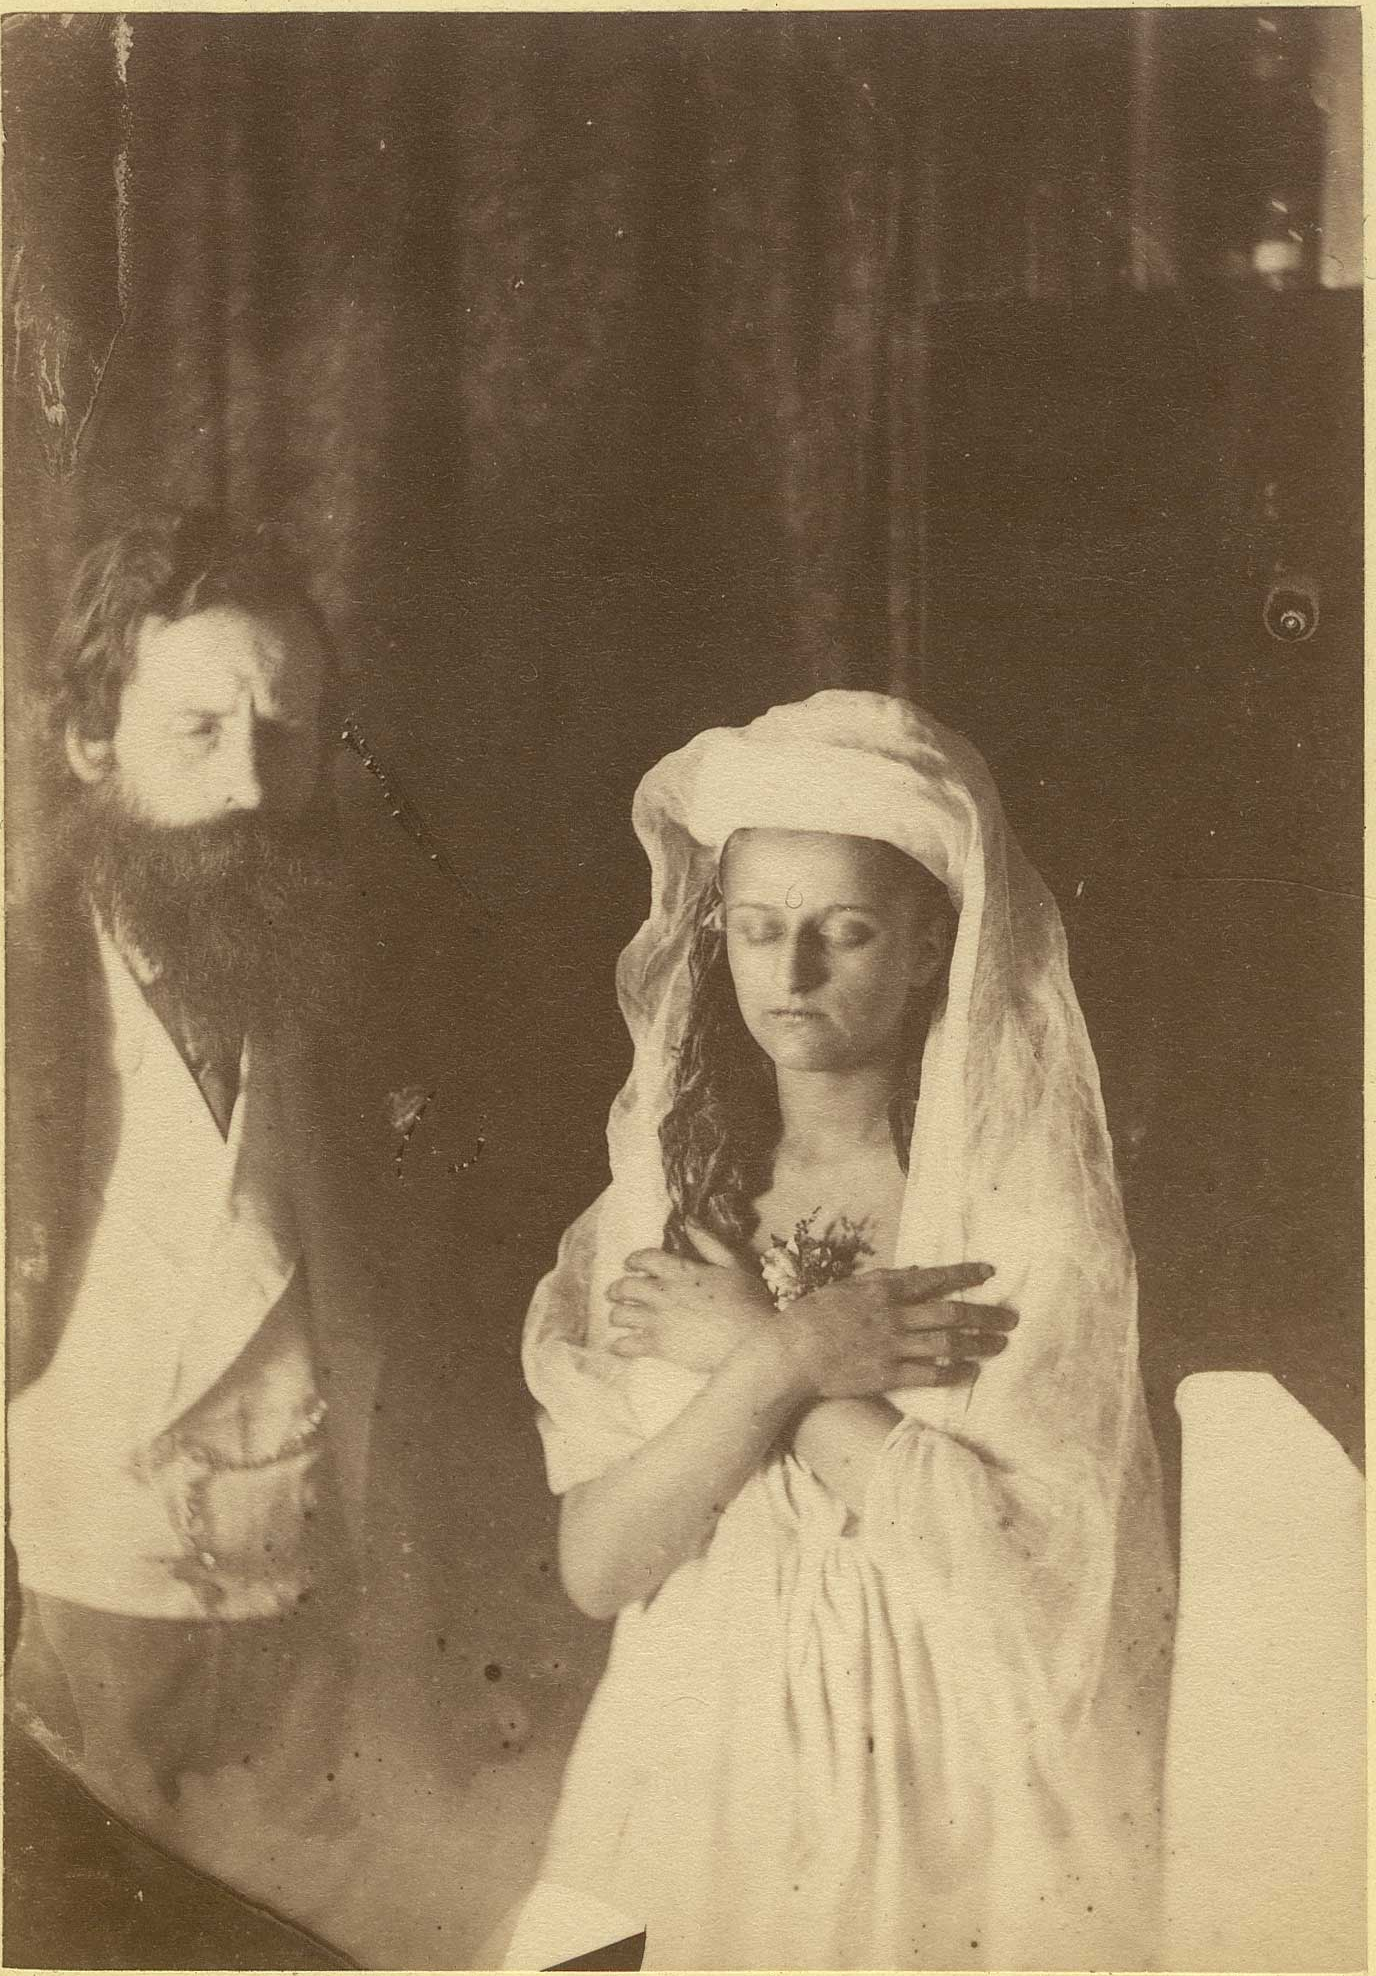 aged photograph of a woman and a man